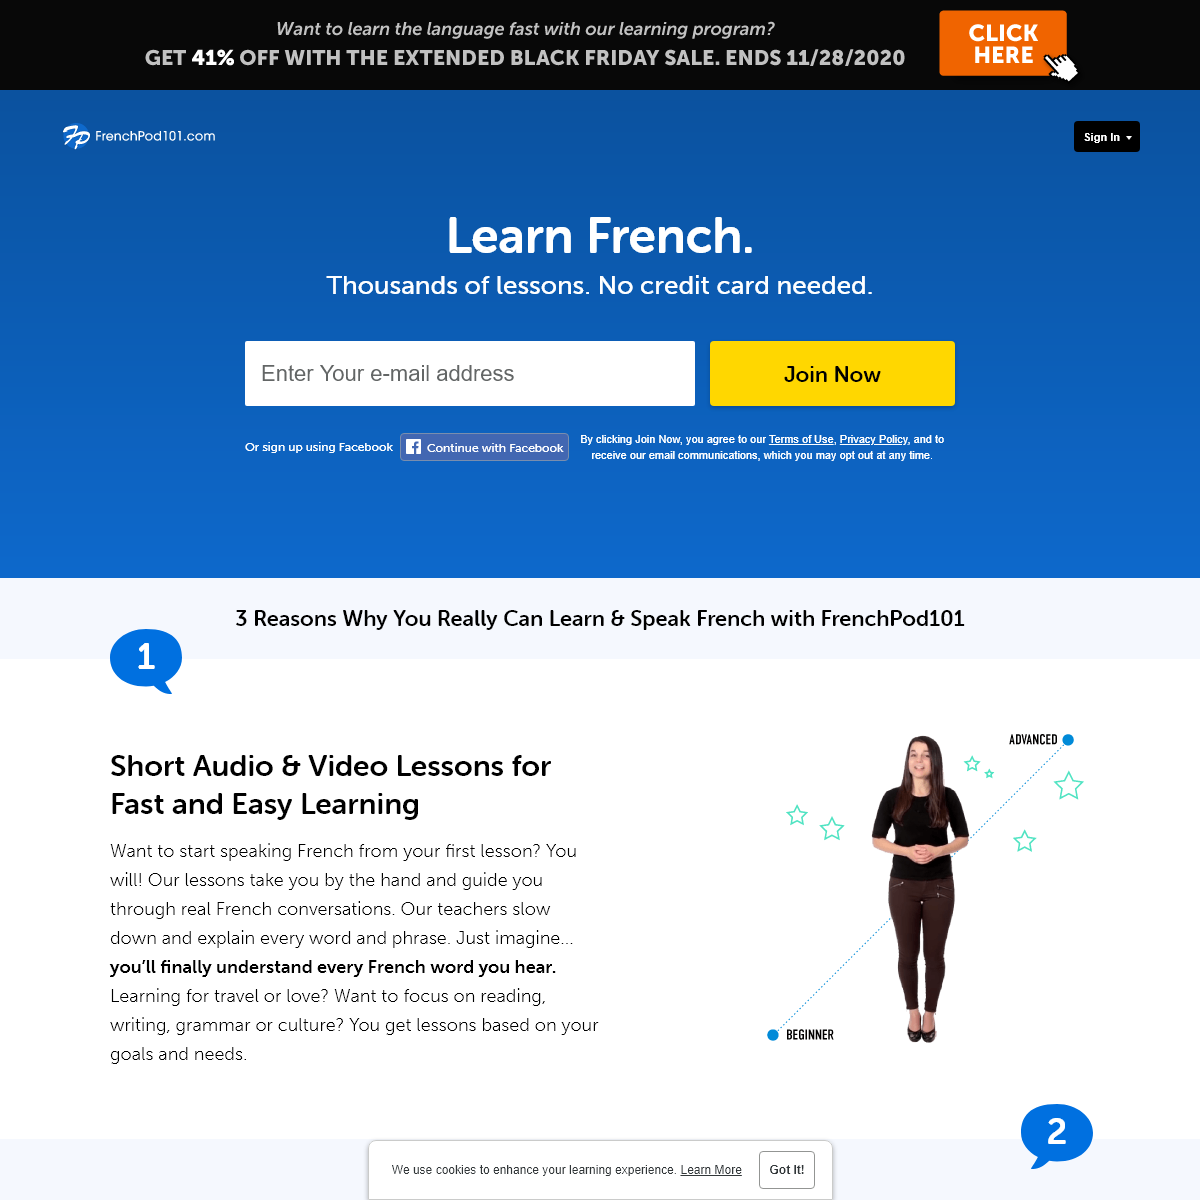 Learn French with a Native Speaker at FrenchPod101.com